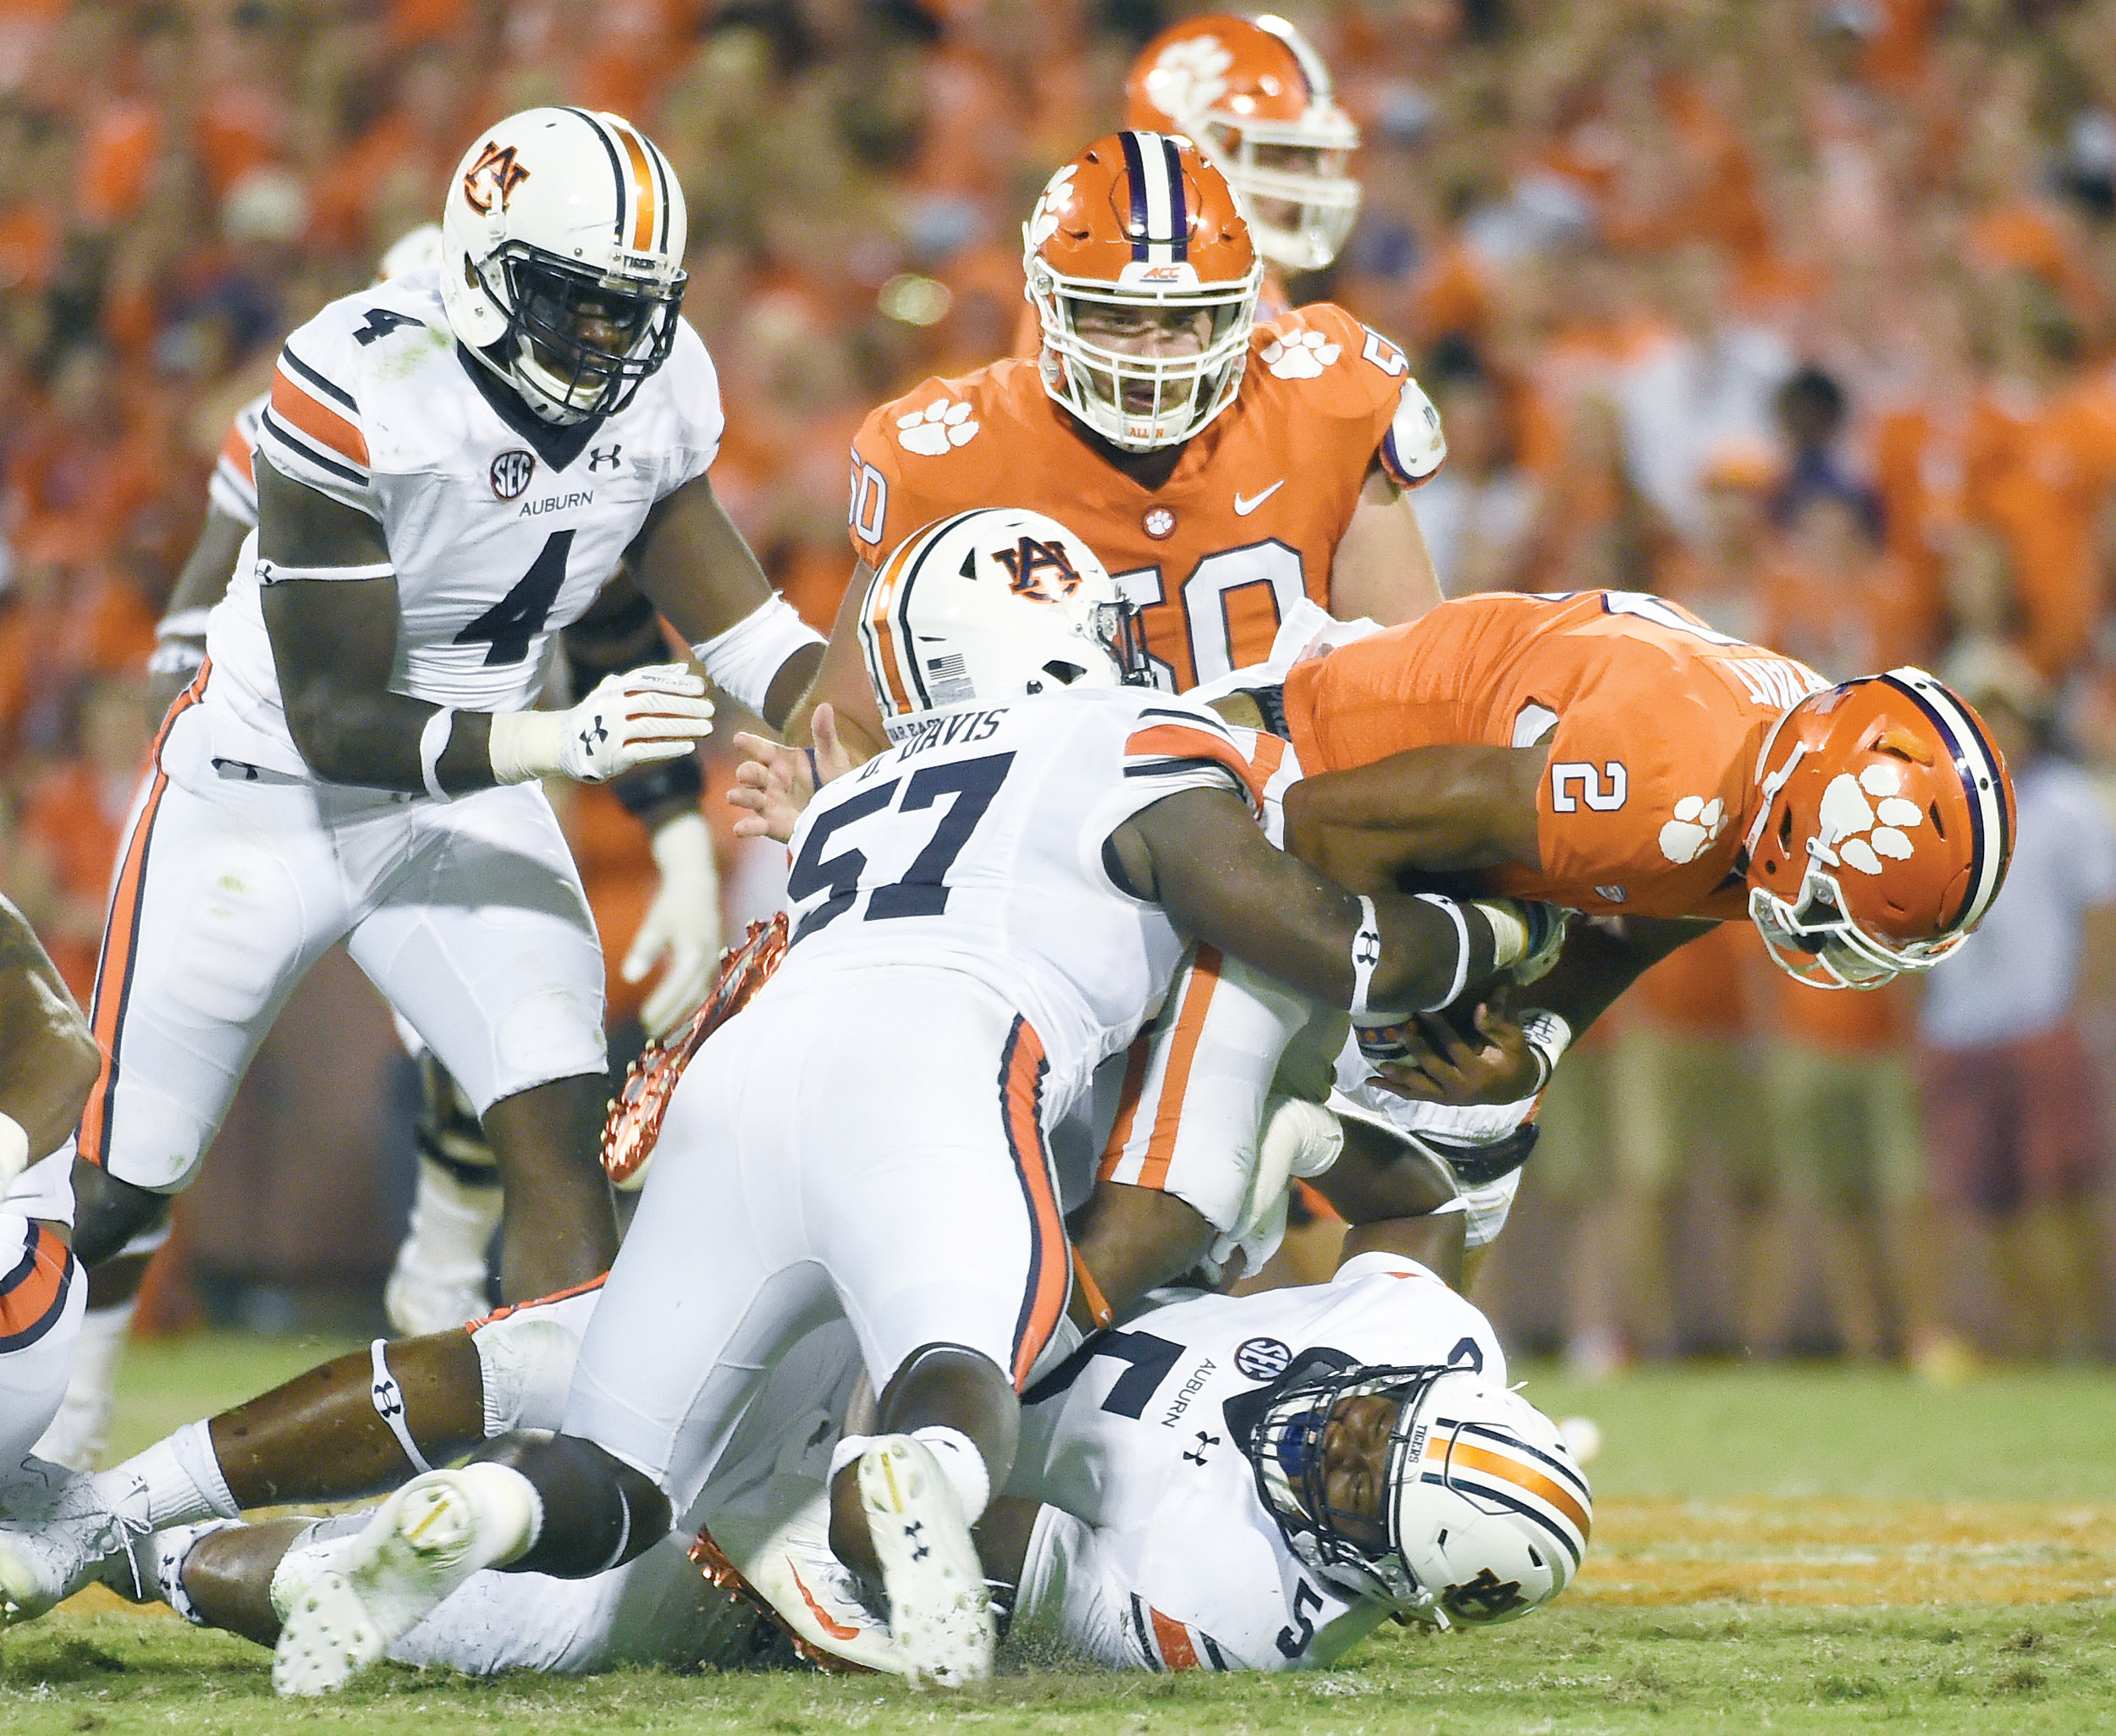 After scoring just 14 points against Auburn last week, Clemson quarterback Kelly Bryant (2) said the Tigers' offense will have to 'bring it' when they travel to Louisville on Saturday.